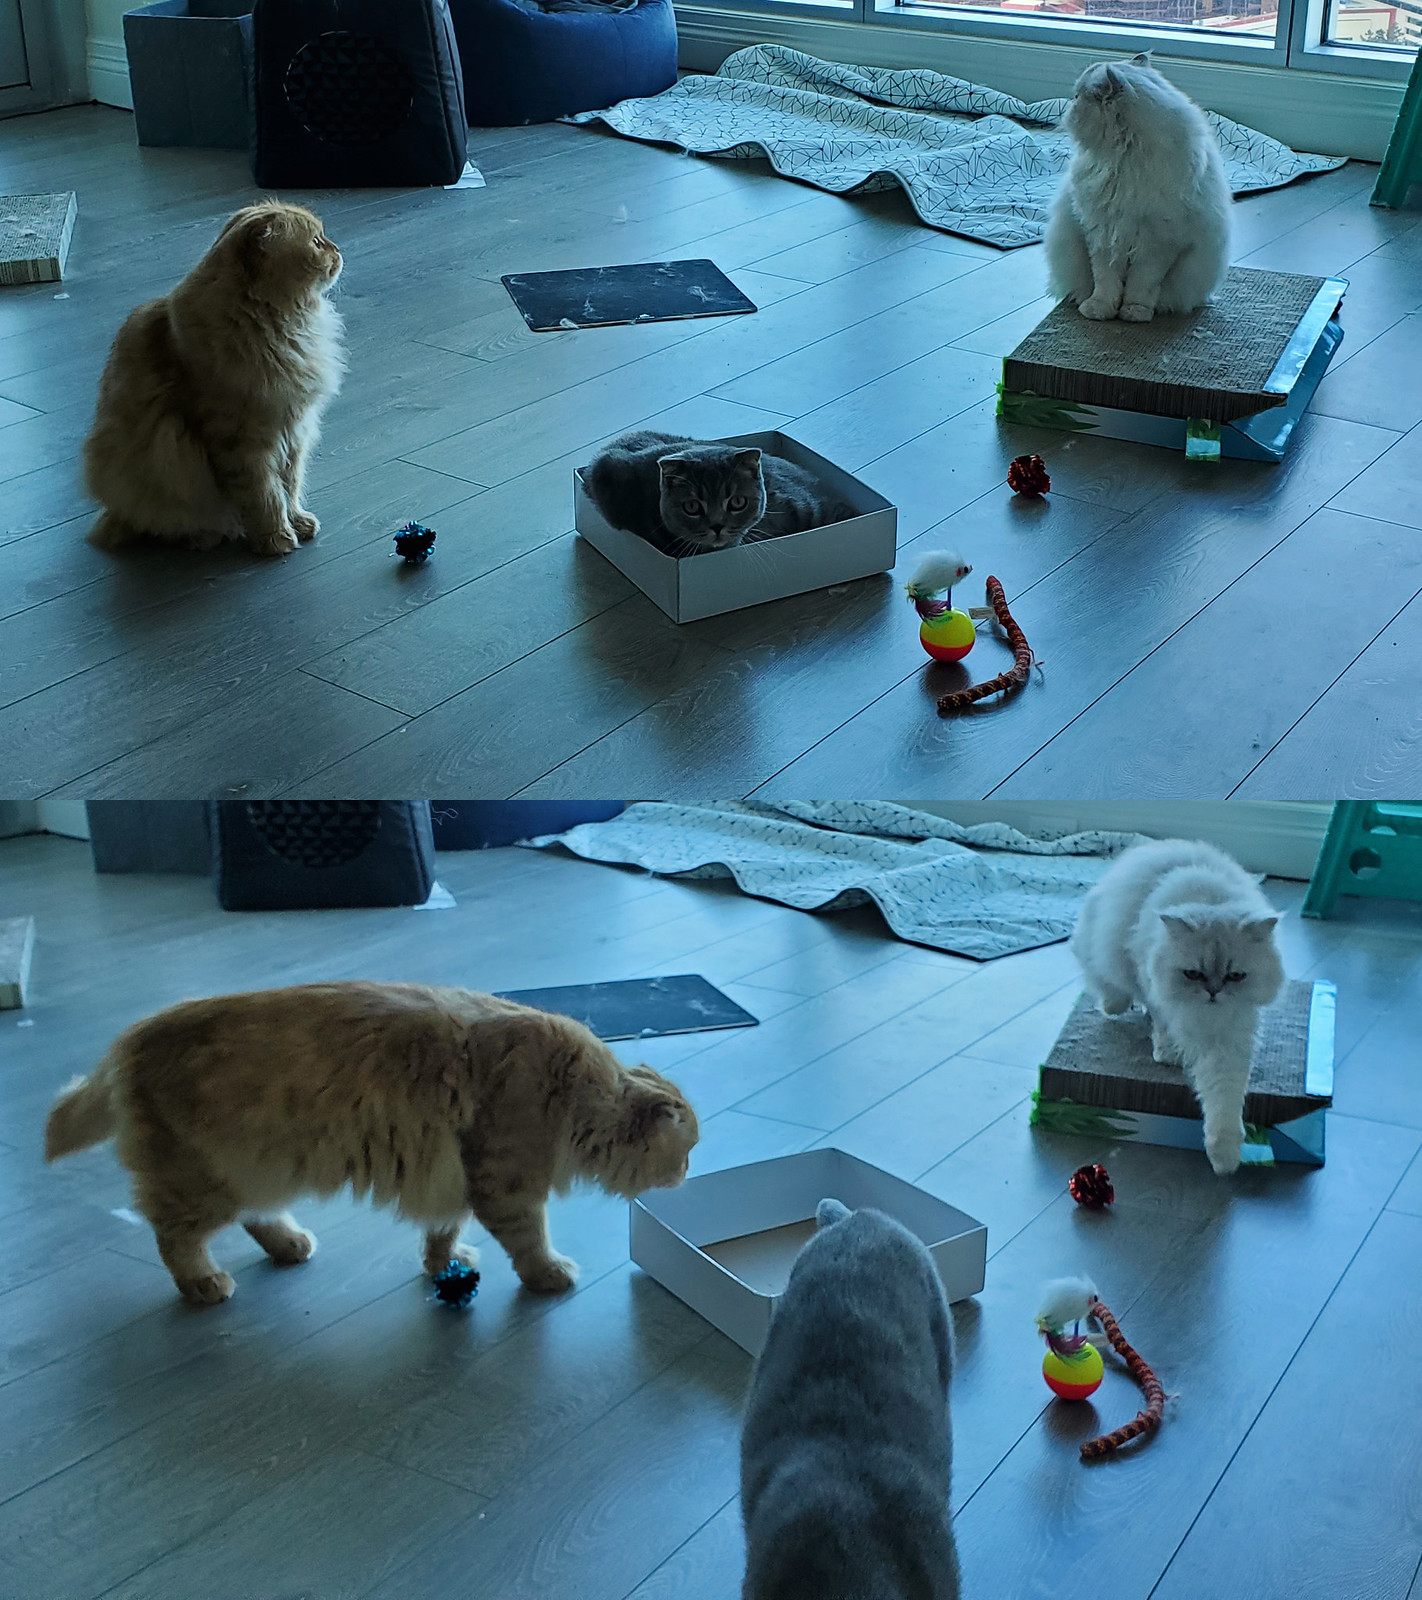 Mochi and Pudding approaching me while Pumpkin goes to steal the box